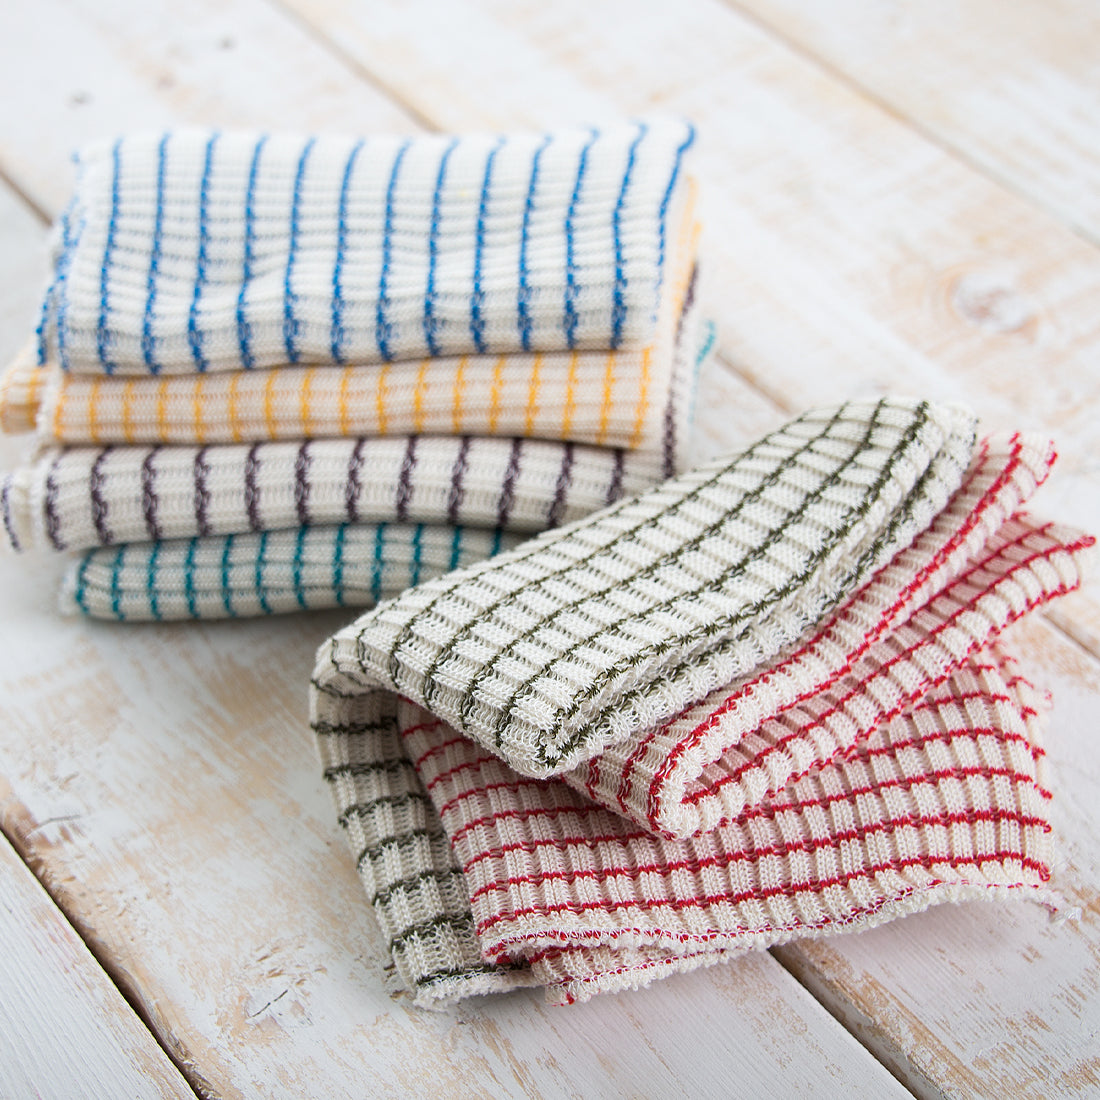 Stack of woven multi-colored dishcloths.